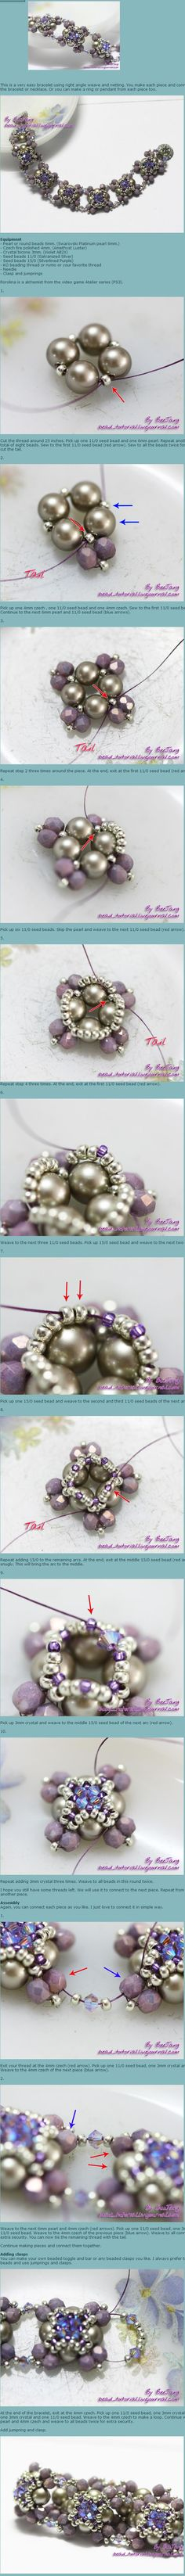 lovely beaded units for bracelets tutorial